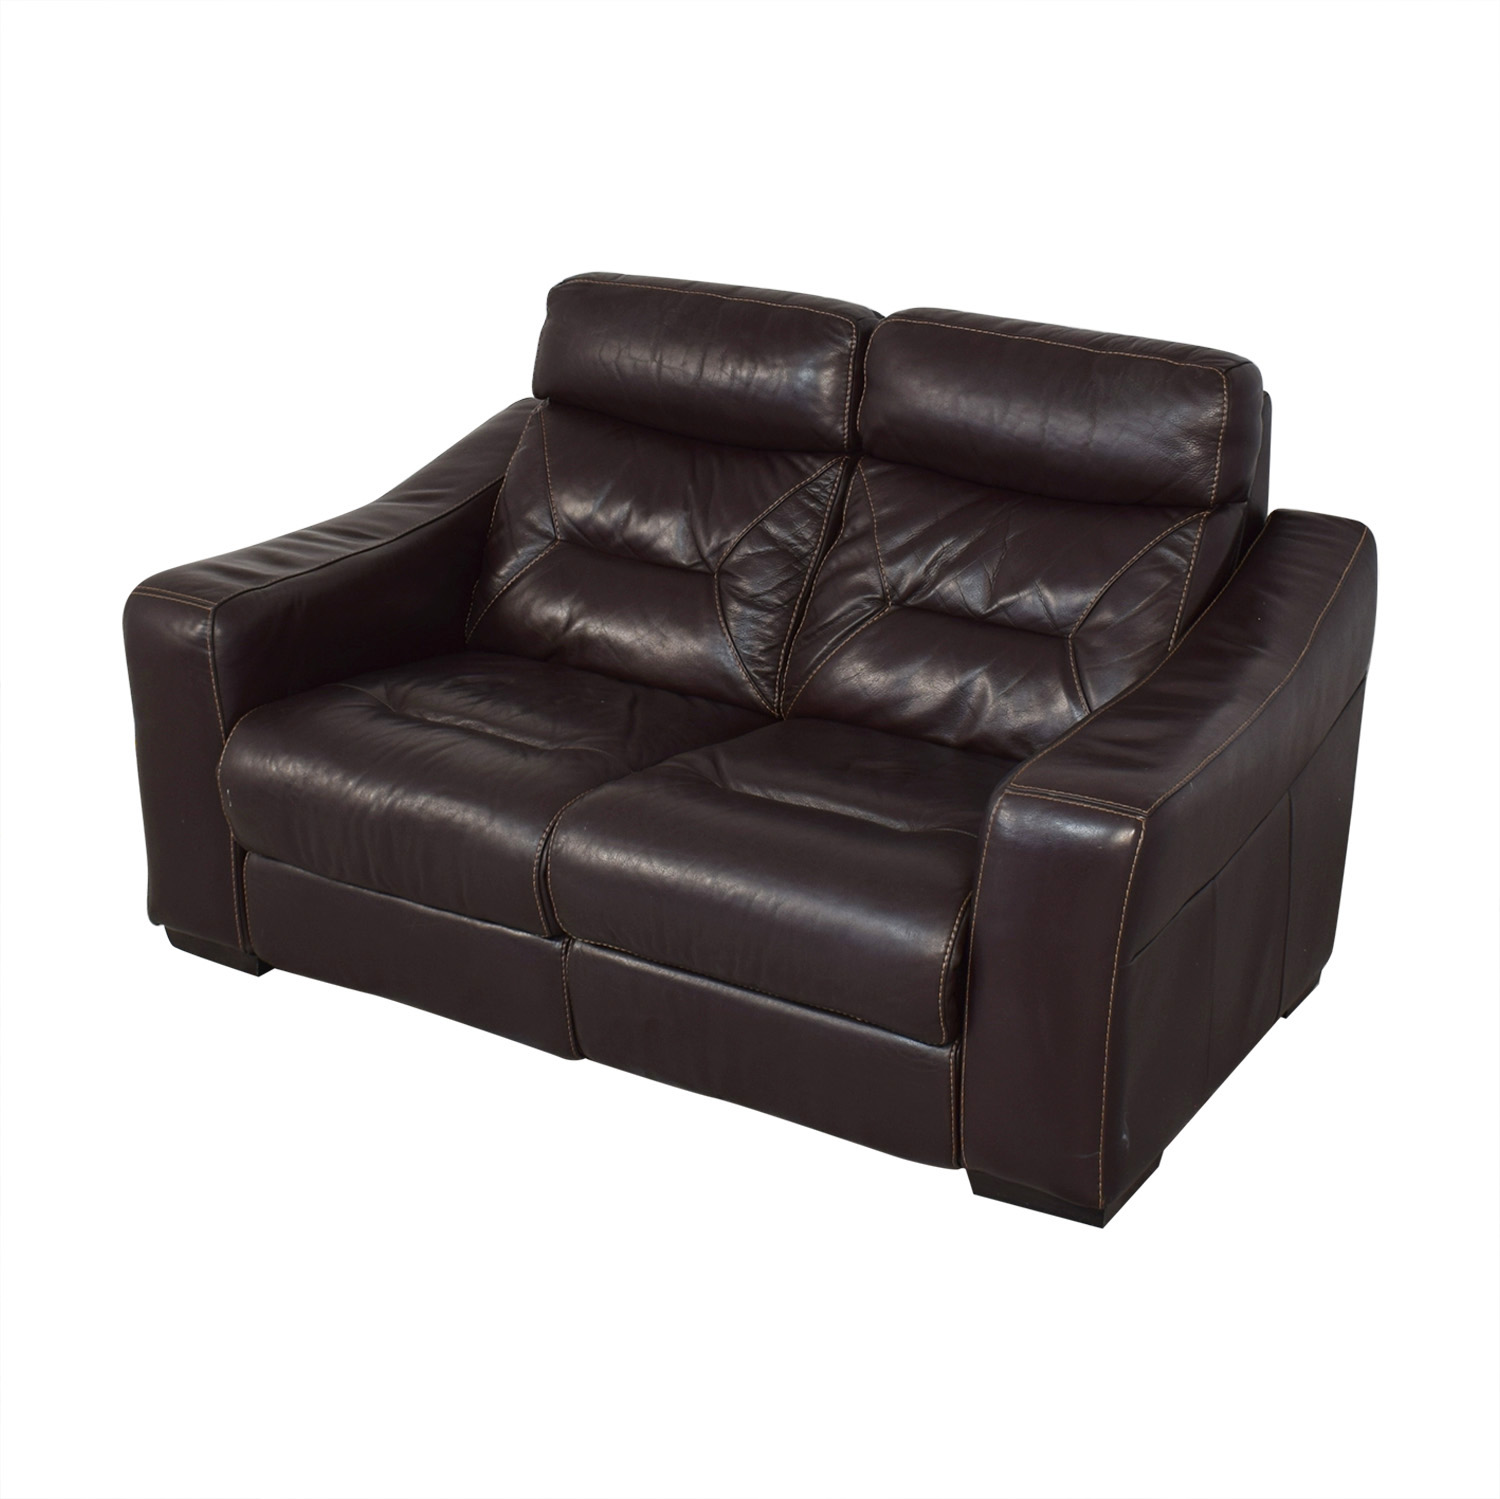 Macy's Macy's Double Reclining Loveseat coupon